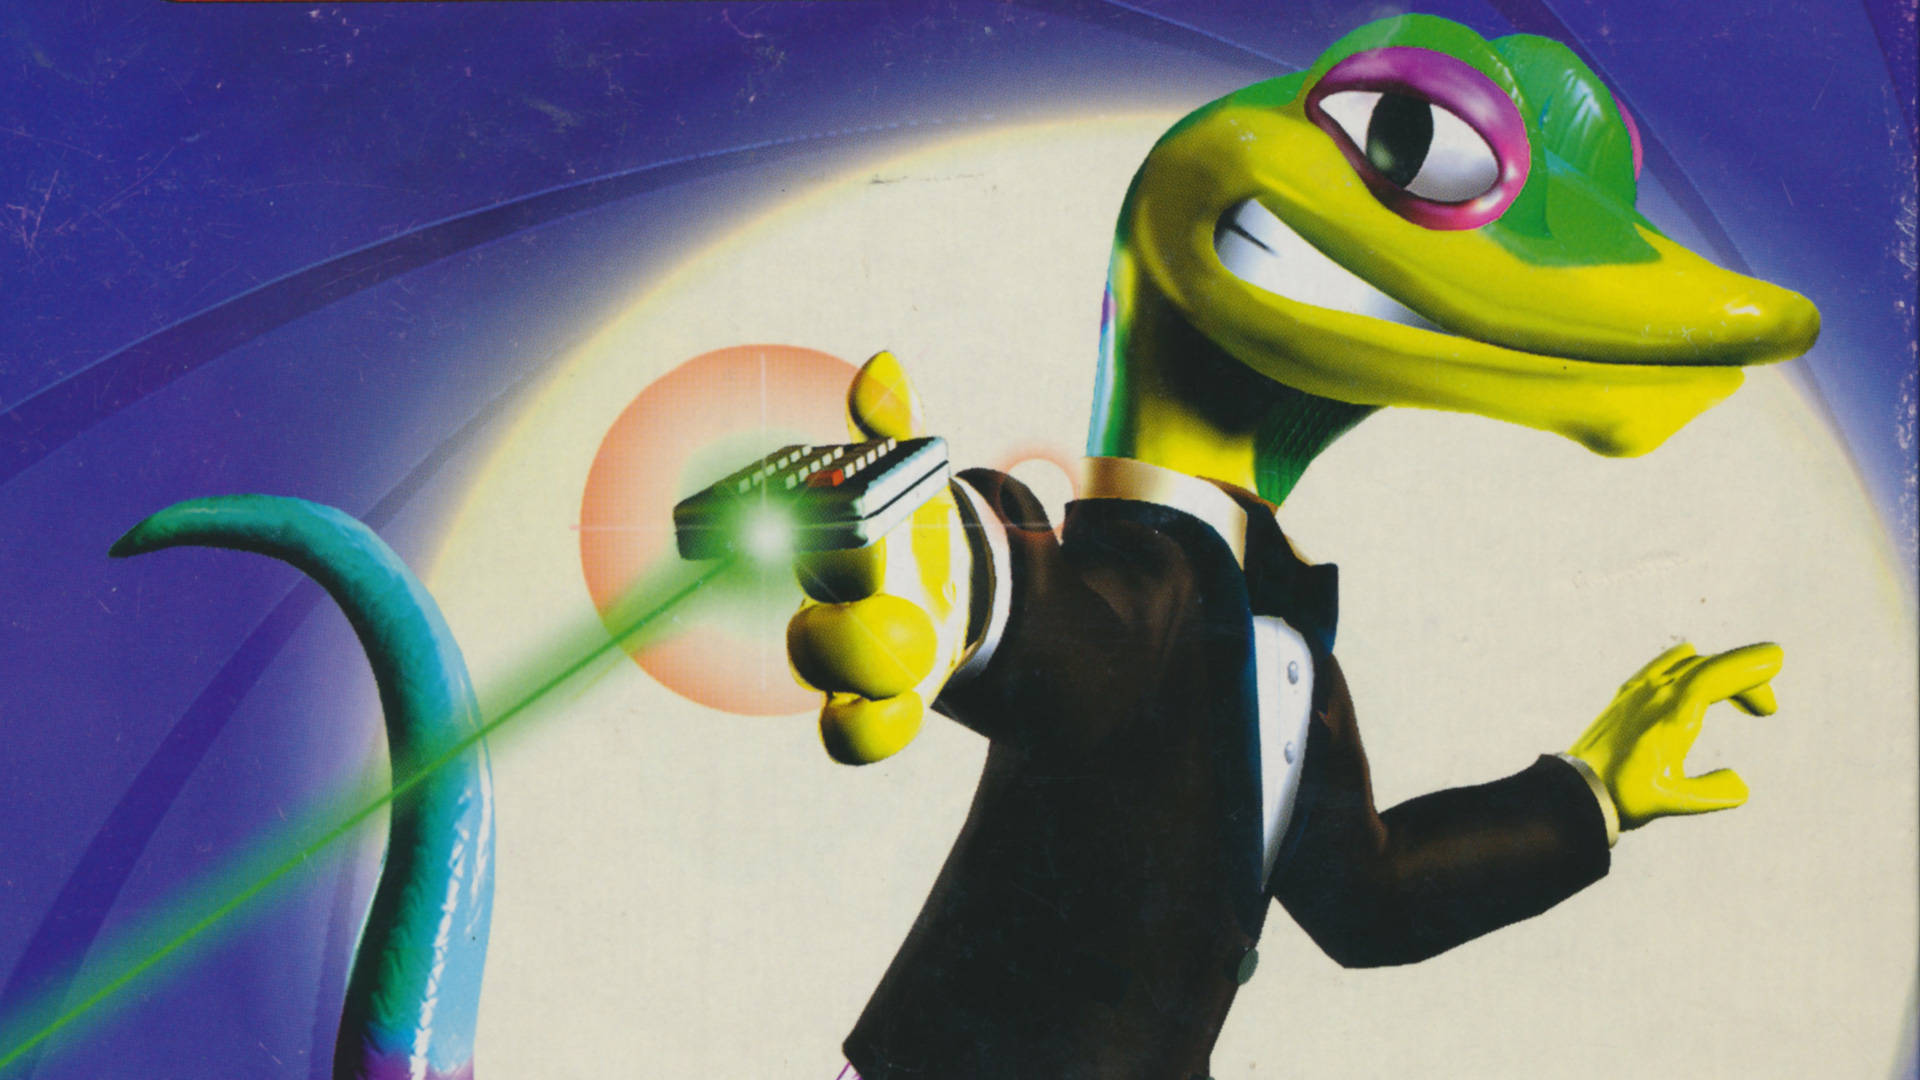 Gex 3D: Enter the Gecko cover image